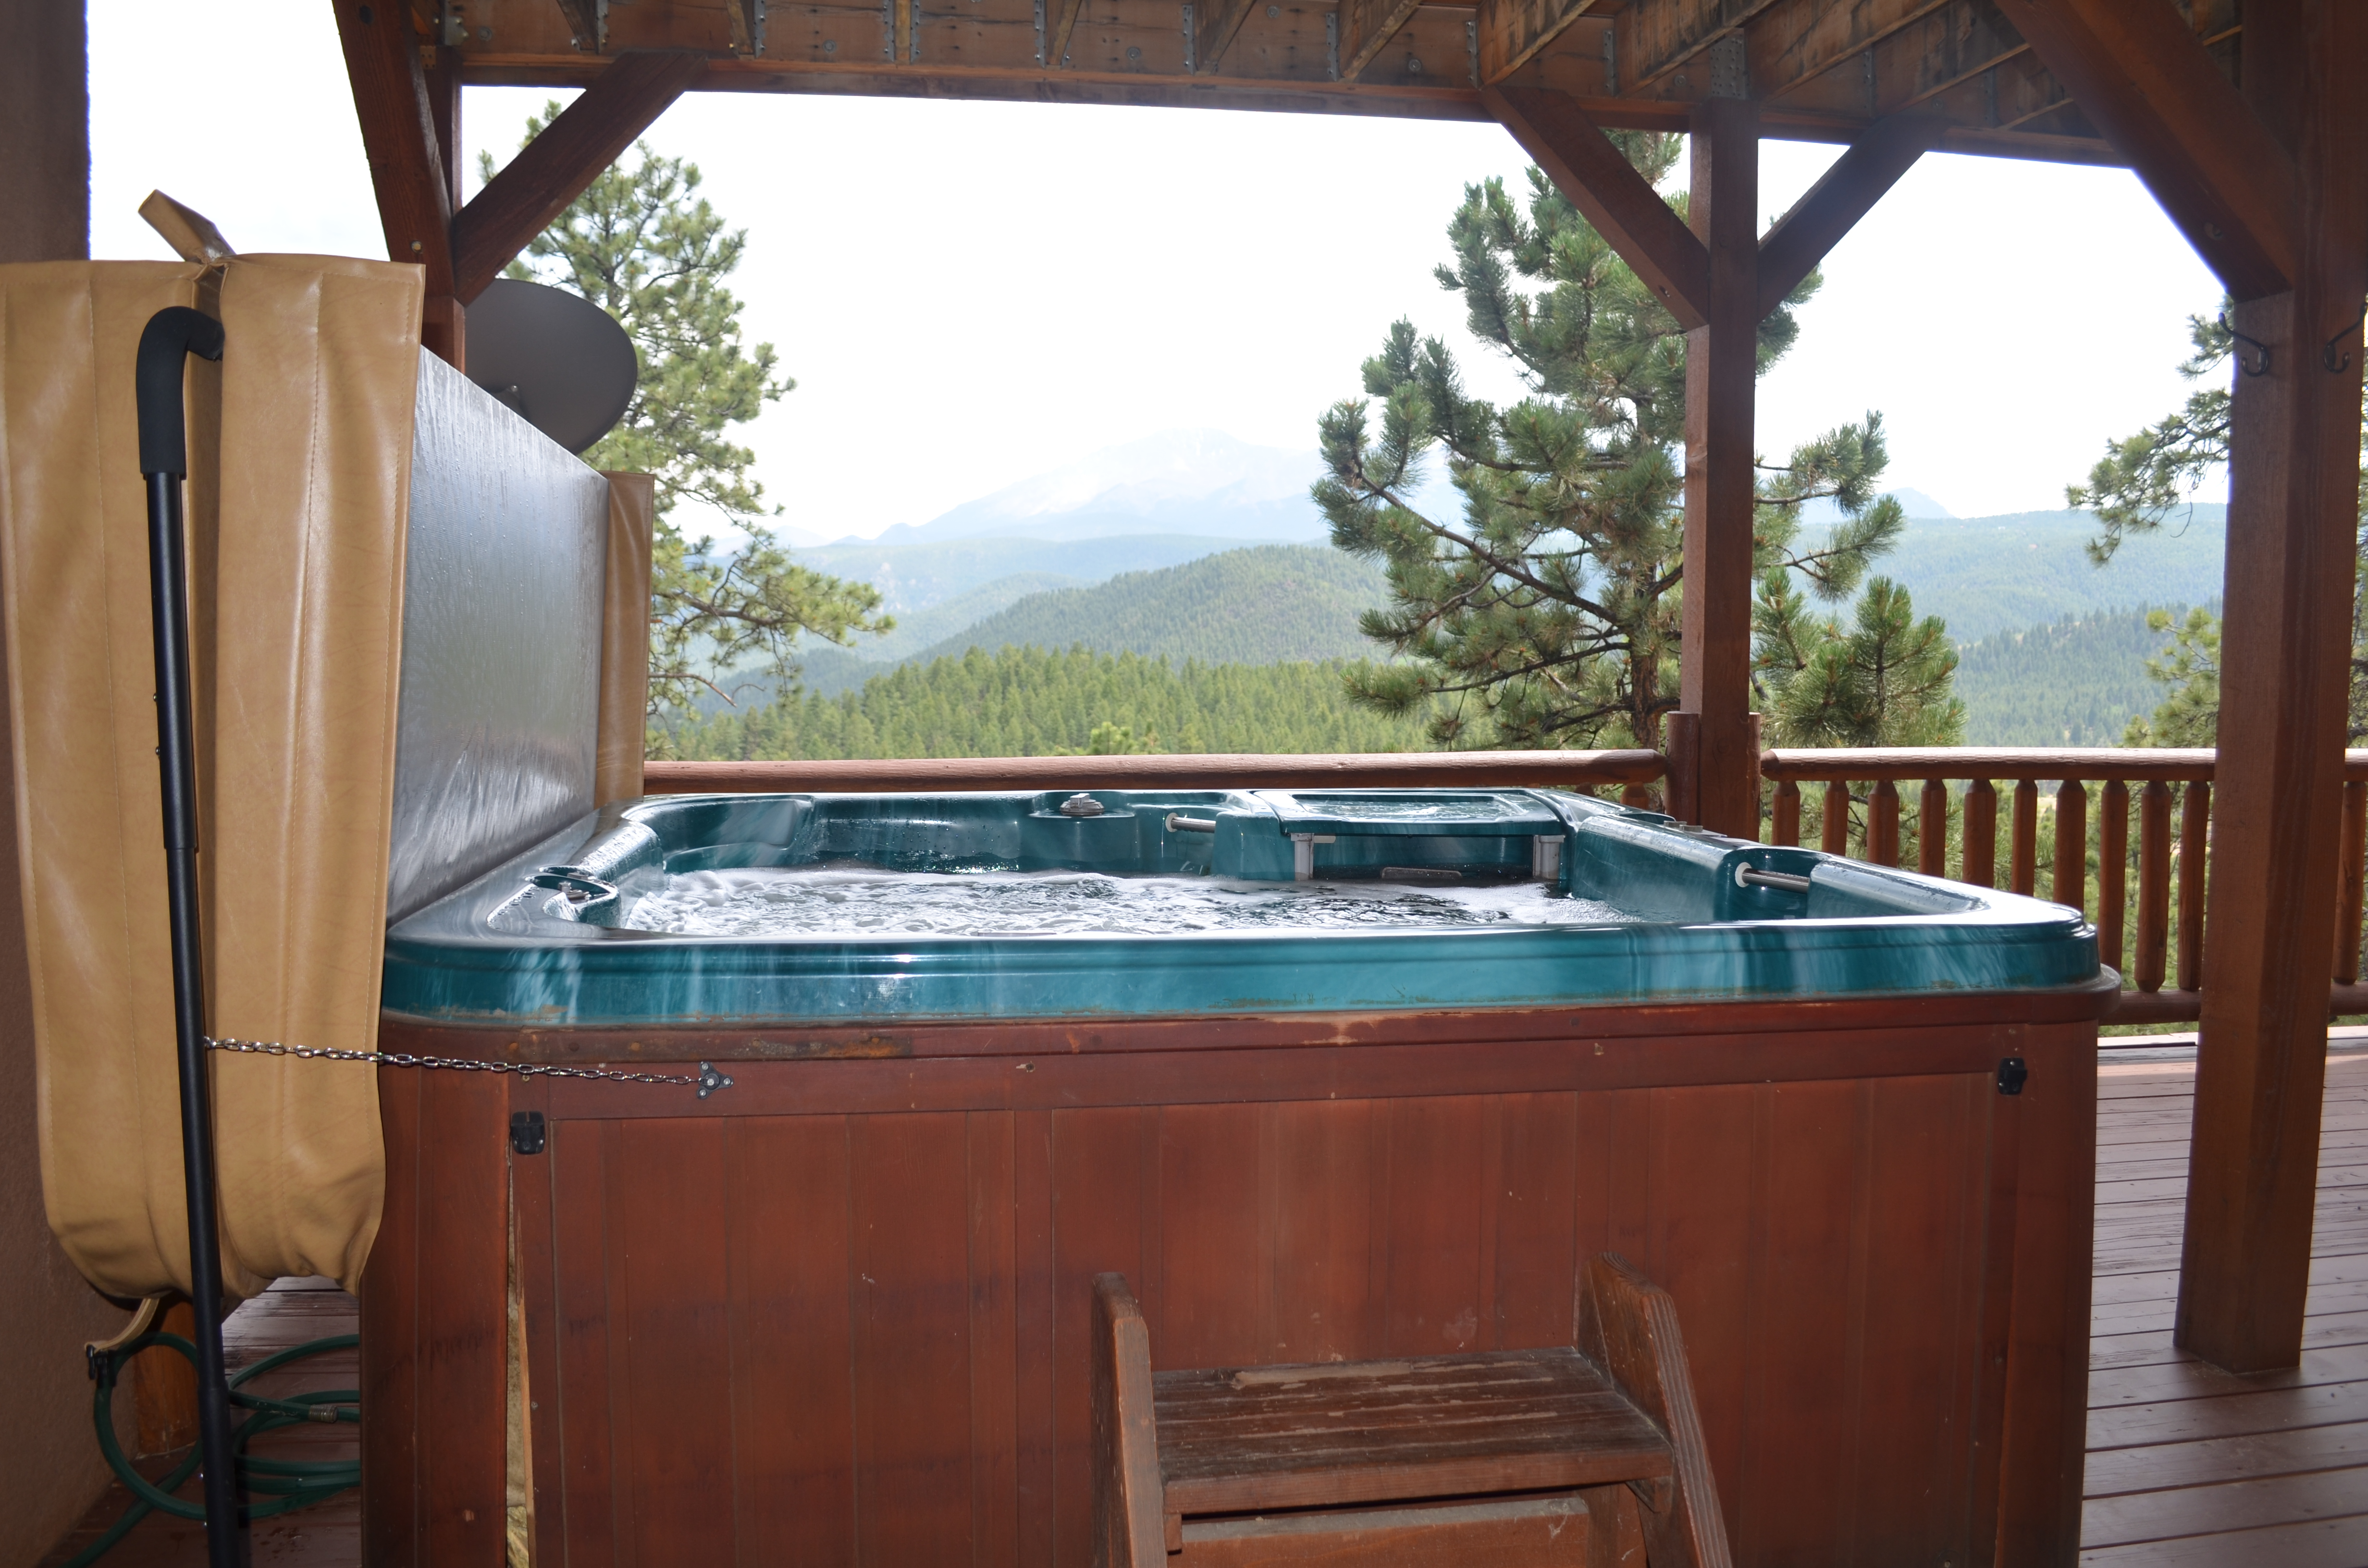 The lower deck sports the hot tub. Take a dip at the end of a day of exploring.